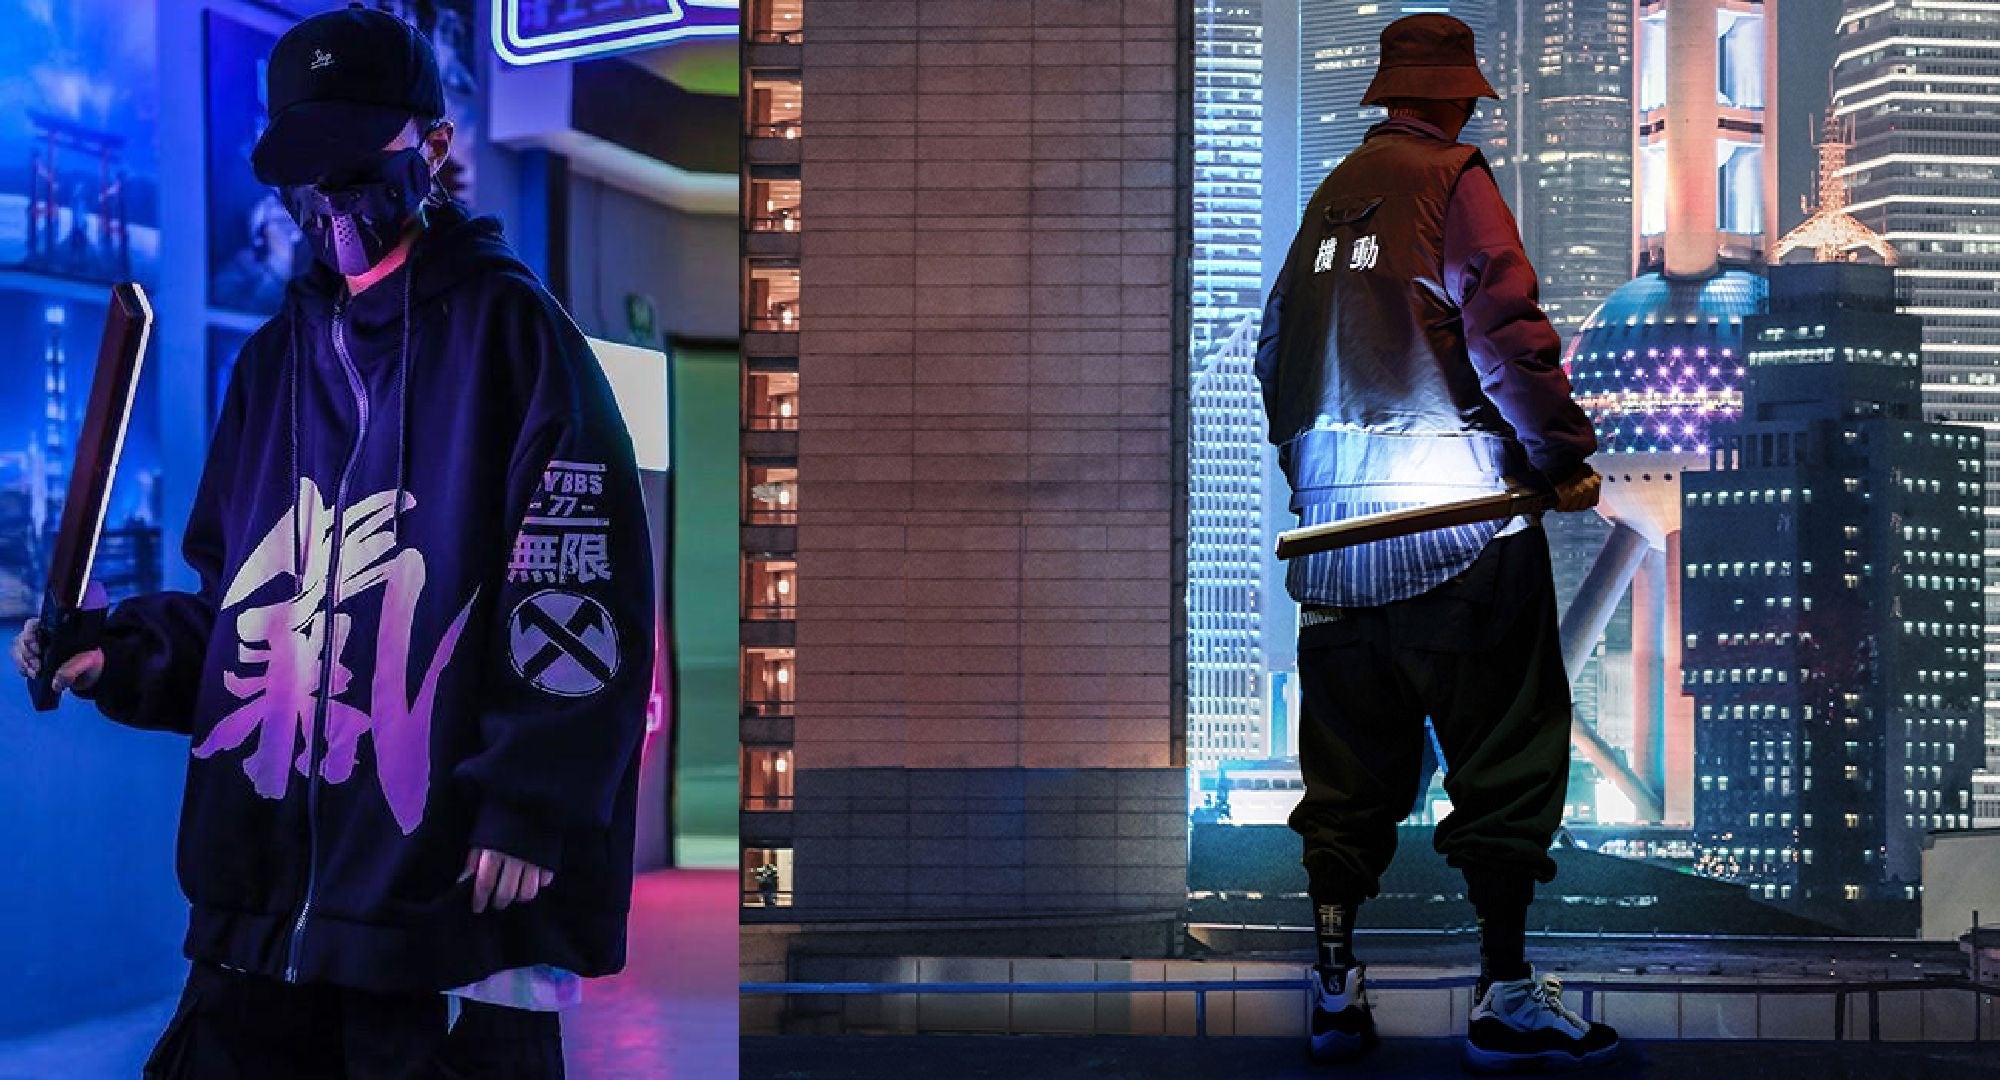 Techwear: High-tech language in fashion trends